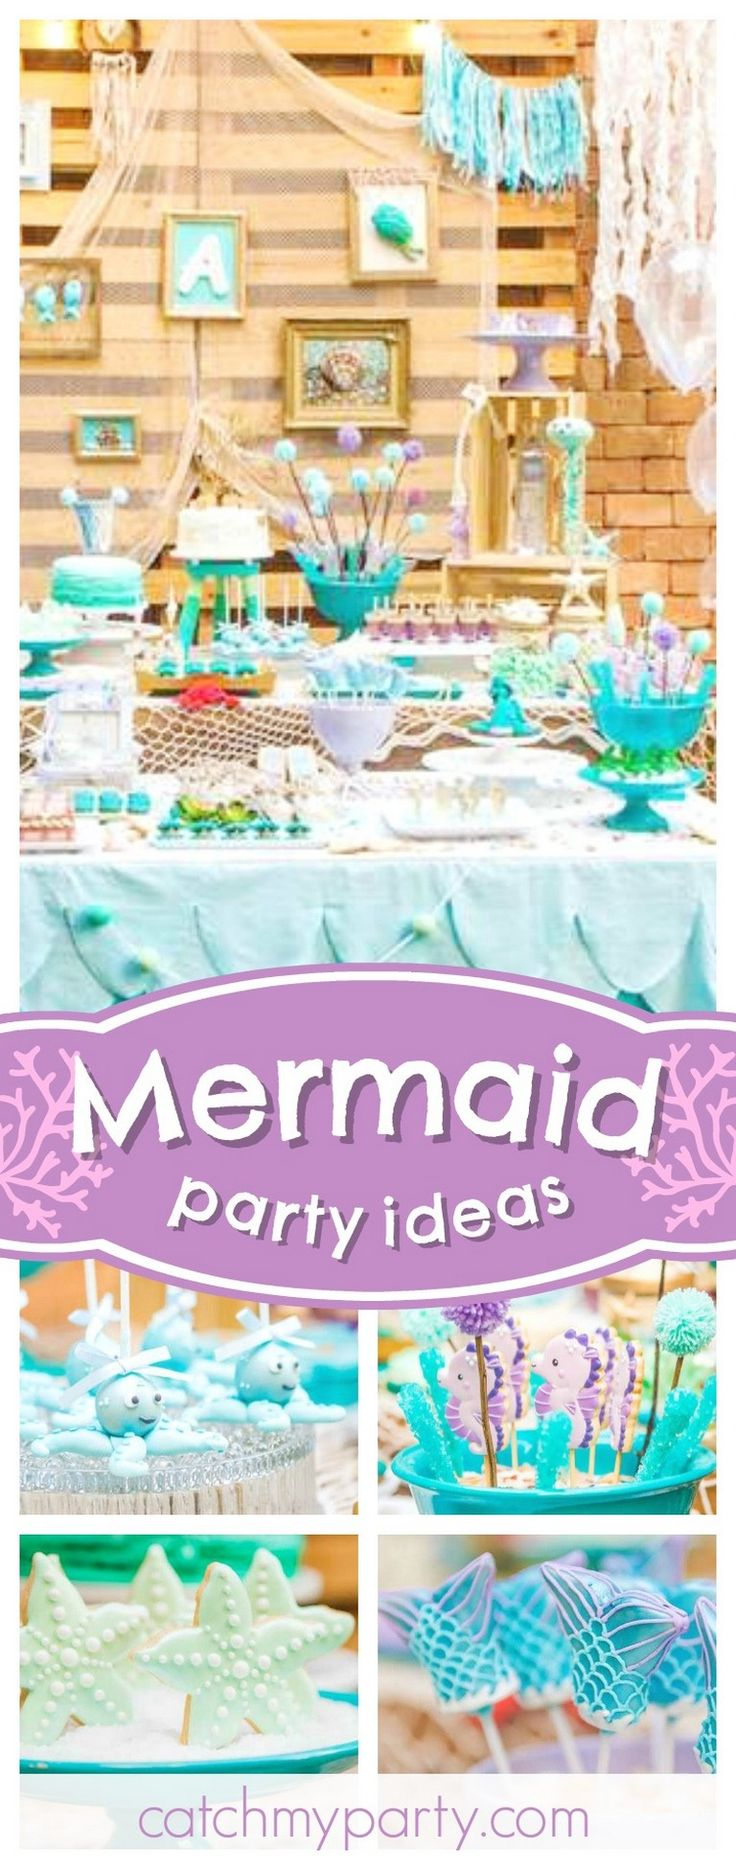 This article help you find for Mermaid Party Ideas 6 Year Old, Mermaid Party Ideas Diy, Mermaid Party Ideas For Toddlers, Mermaid Party Activity Ideas...